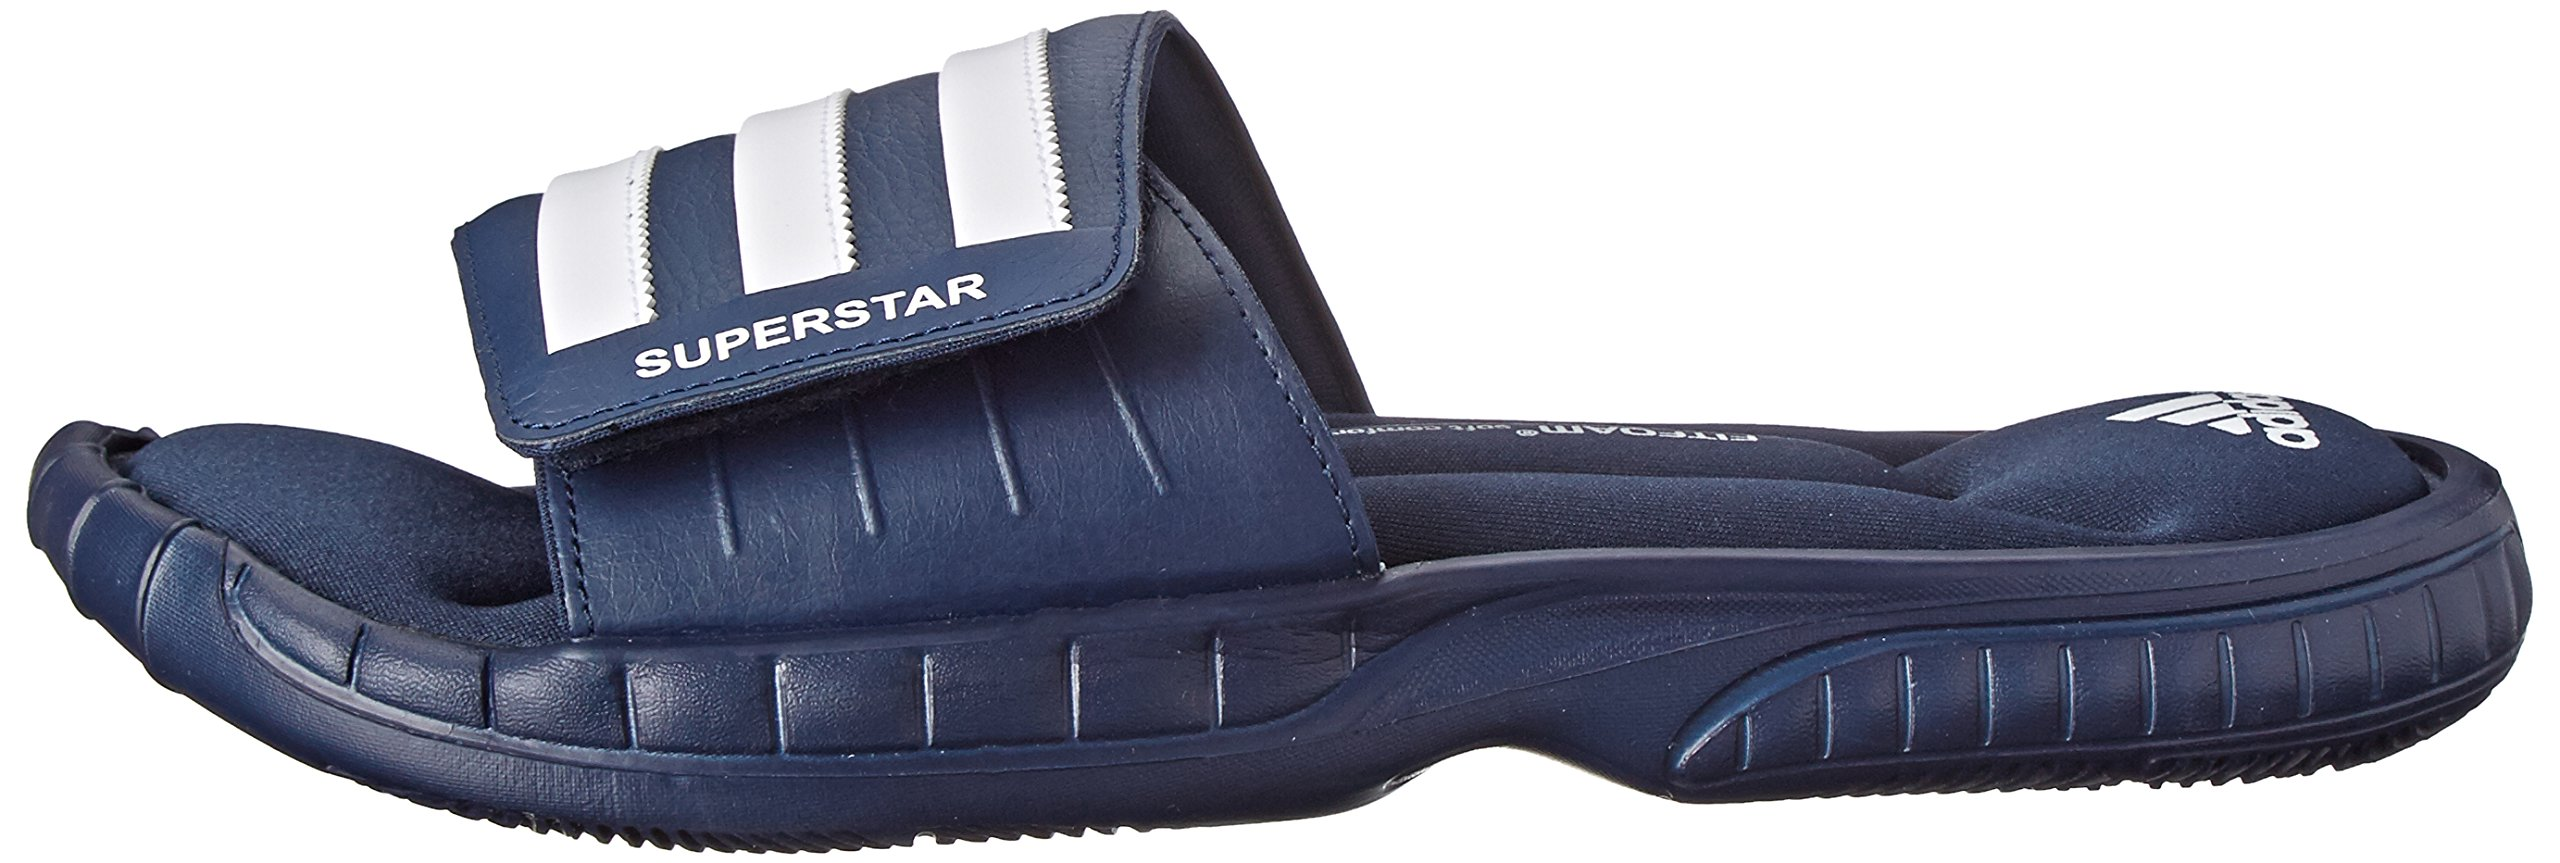 53a712294016 adidas Performance Men s Superstar 3G Slide Sandal